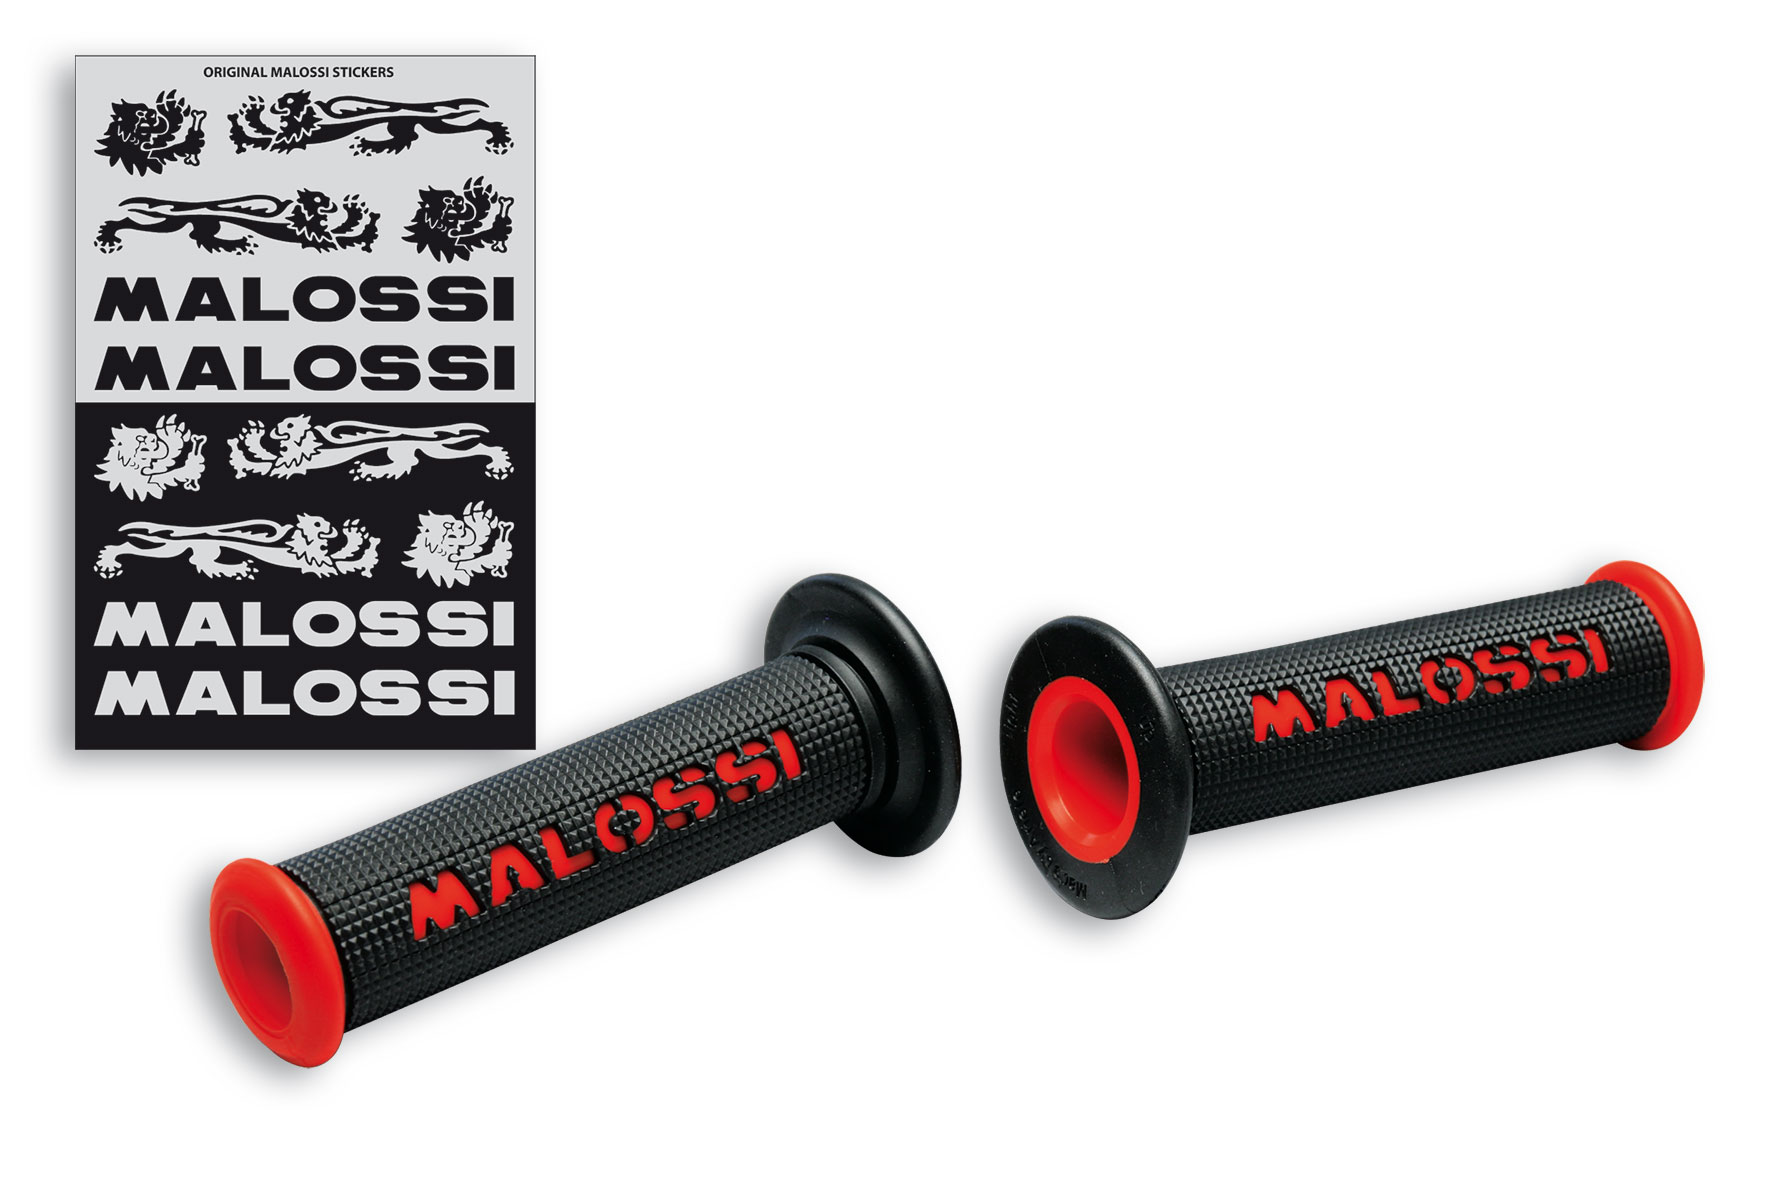 2 BLACK GRIPS with RED Malossi logo (mod. without side fastening)